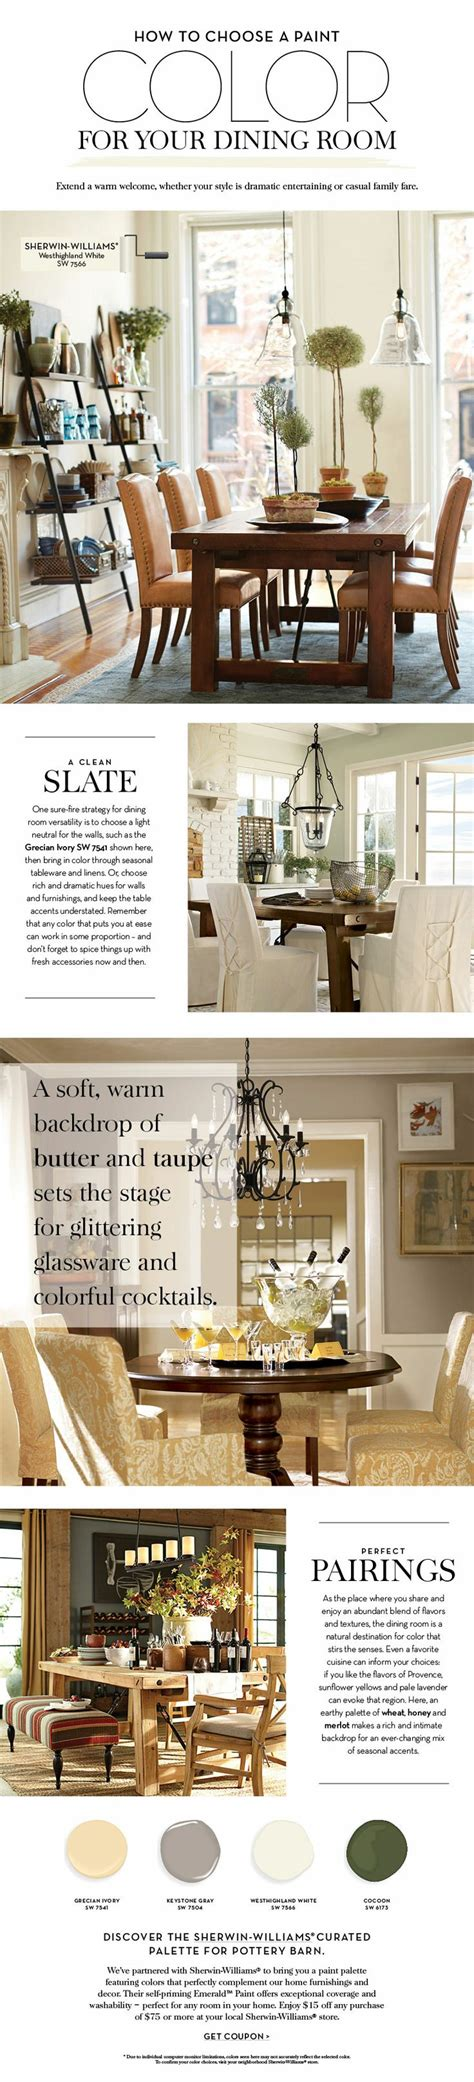 pottery barn kitchen colors 1000 ideas about pottery barn colors on 4376